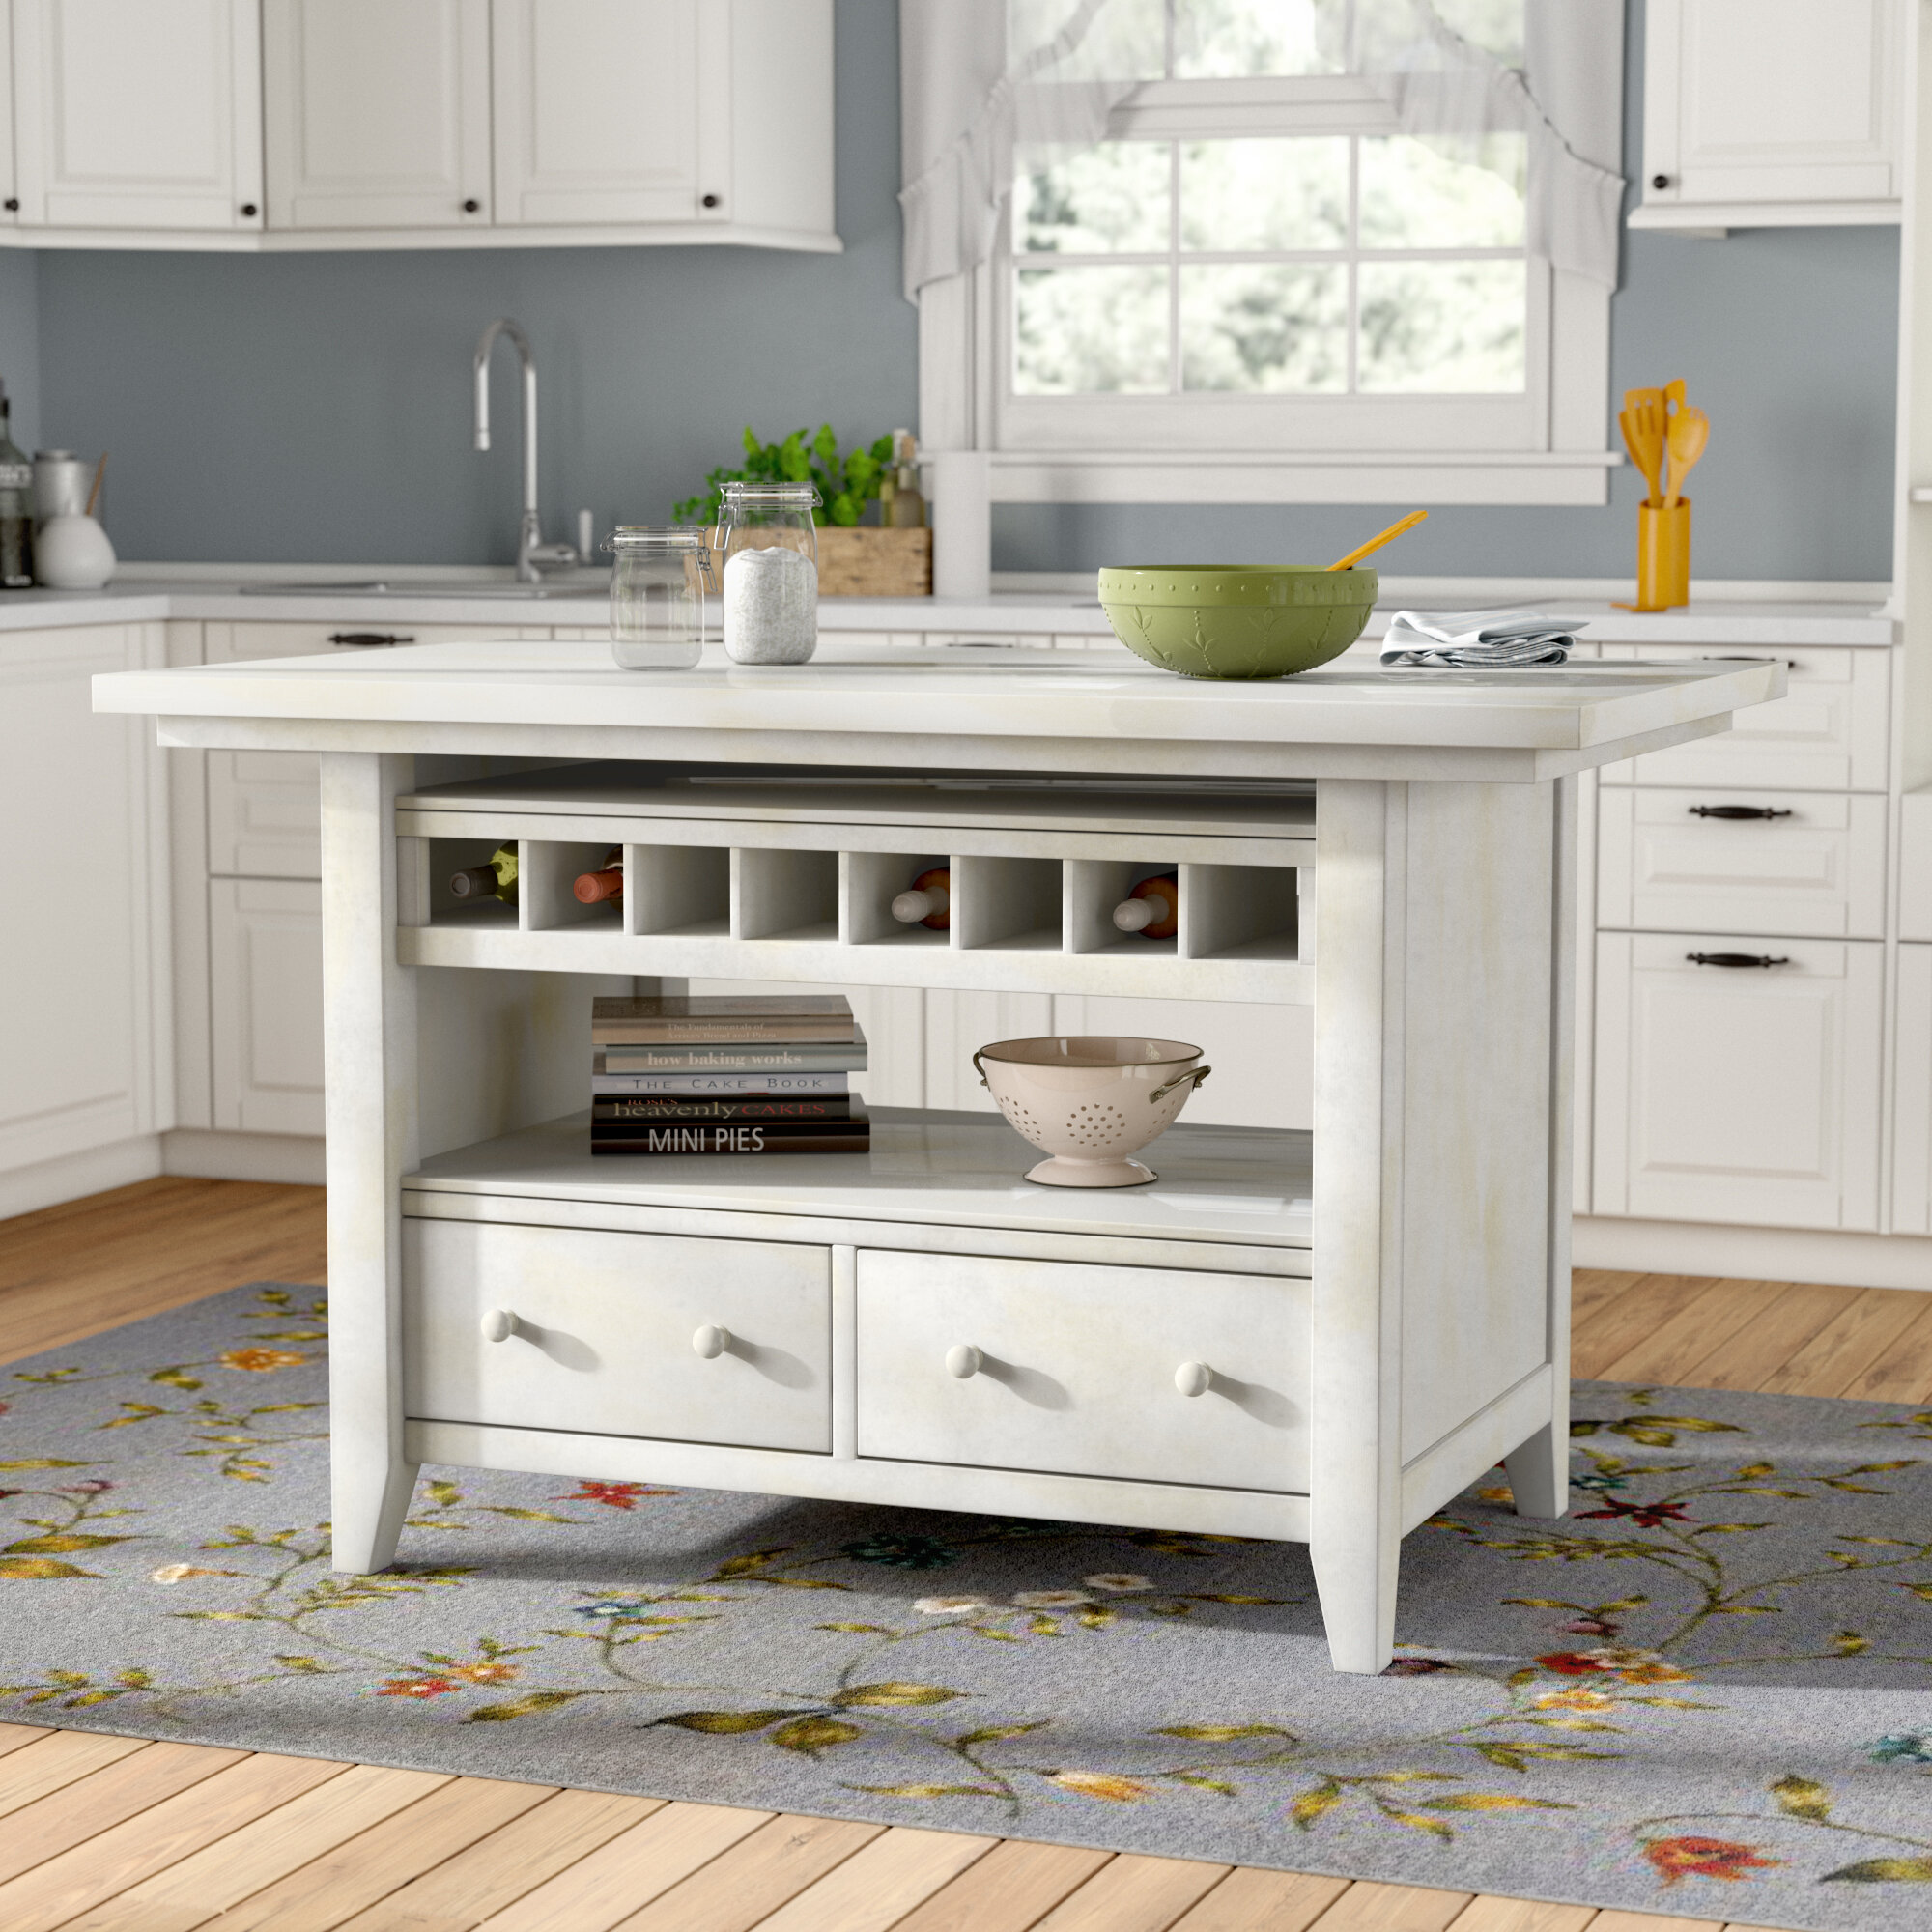 diy build a wheels on island hgtv kitchens kitchen to design rooms how